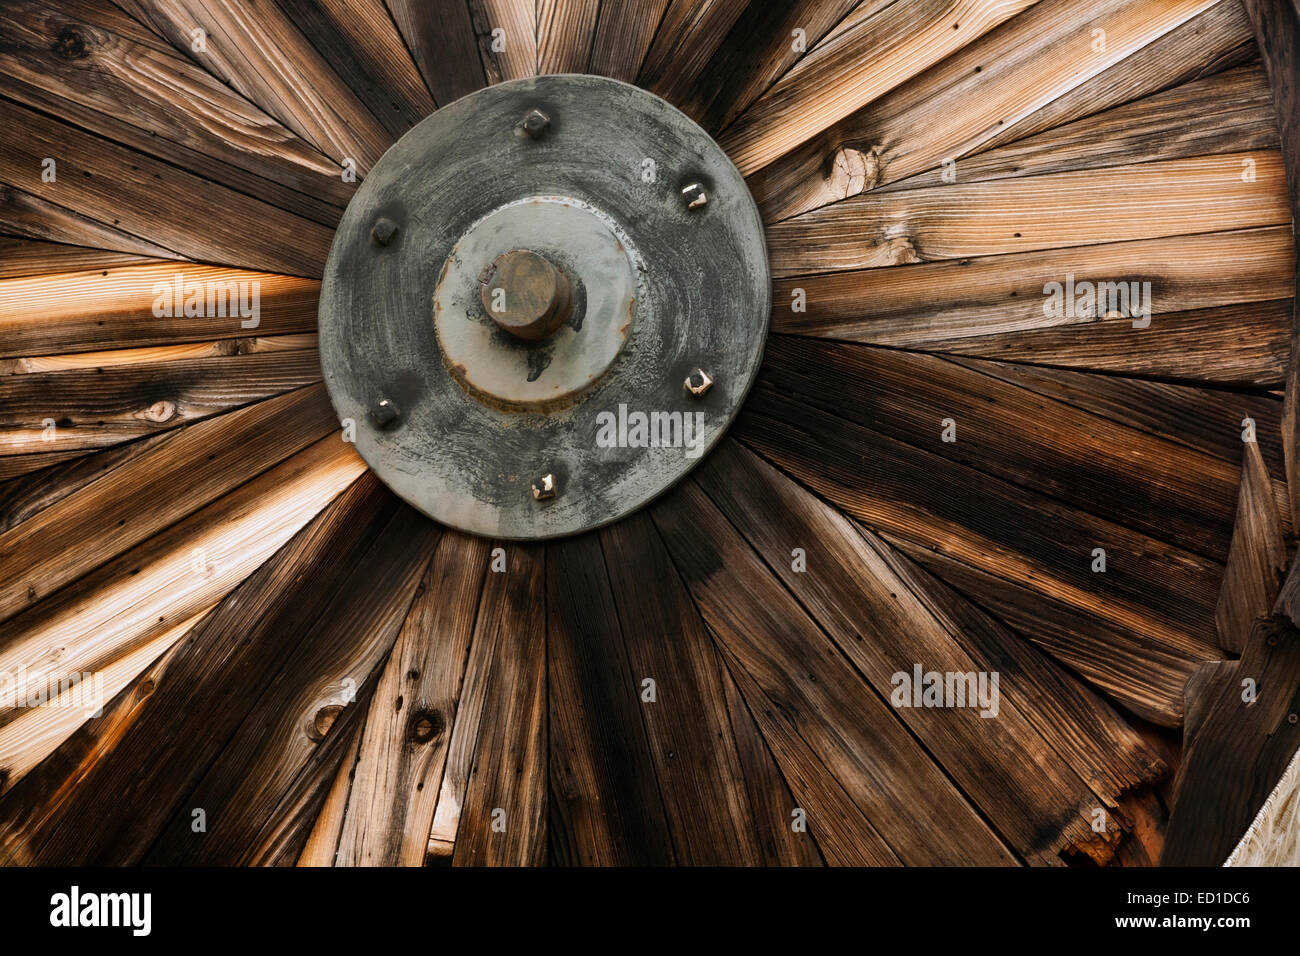 CALIFORNIA - Wooden wheel in Stamp Mill exhibit at Marshall Gold Discovery State Historic Park, site of Sutter's - Stock Image